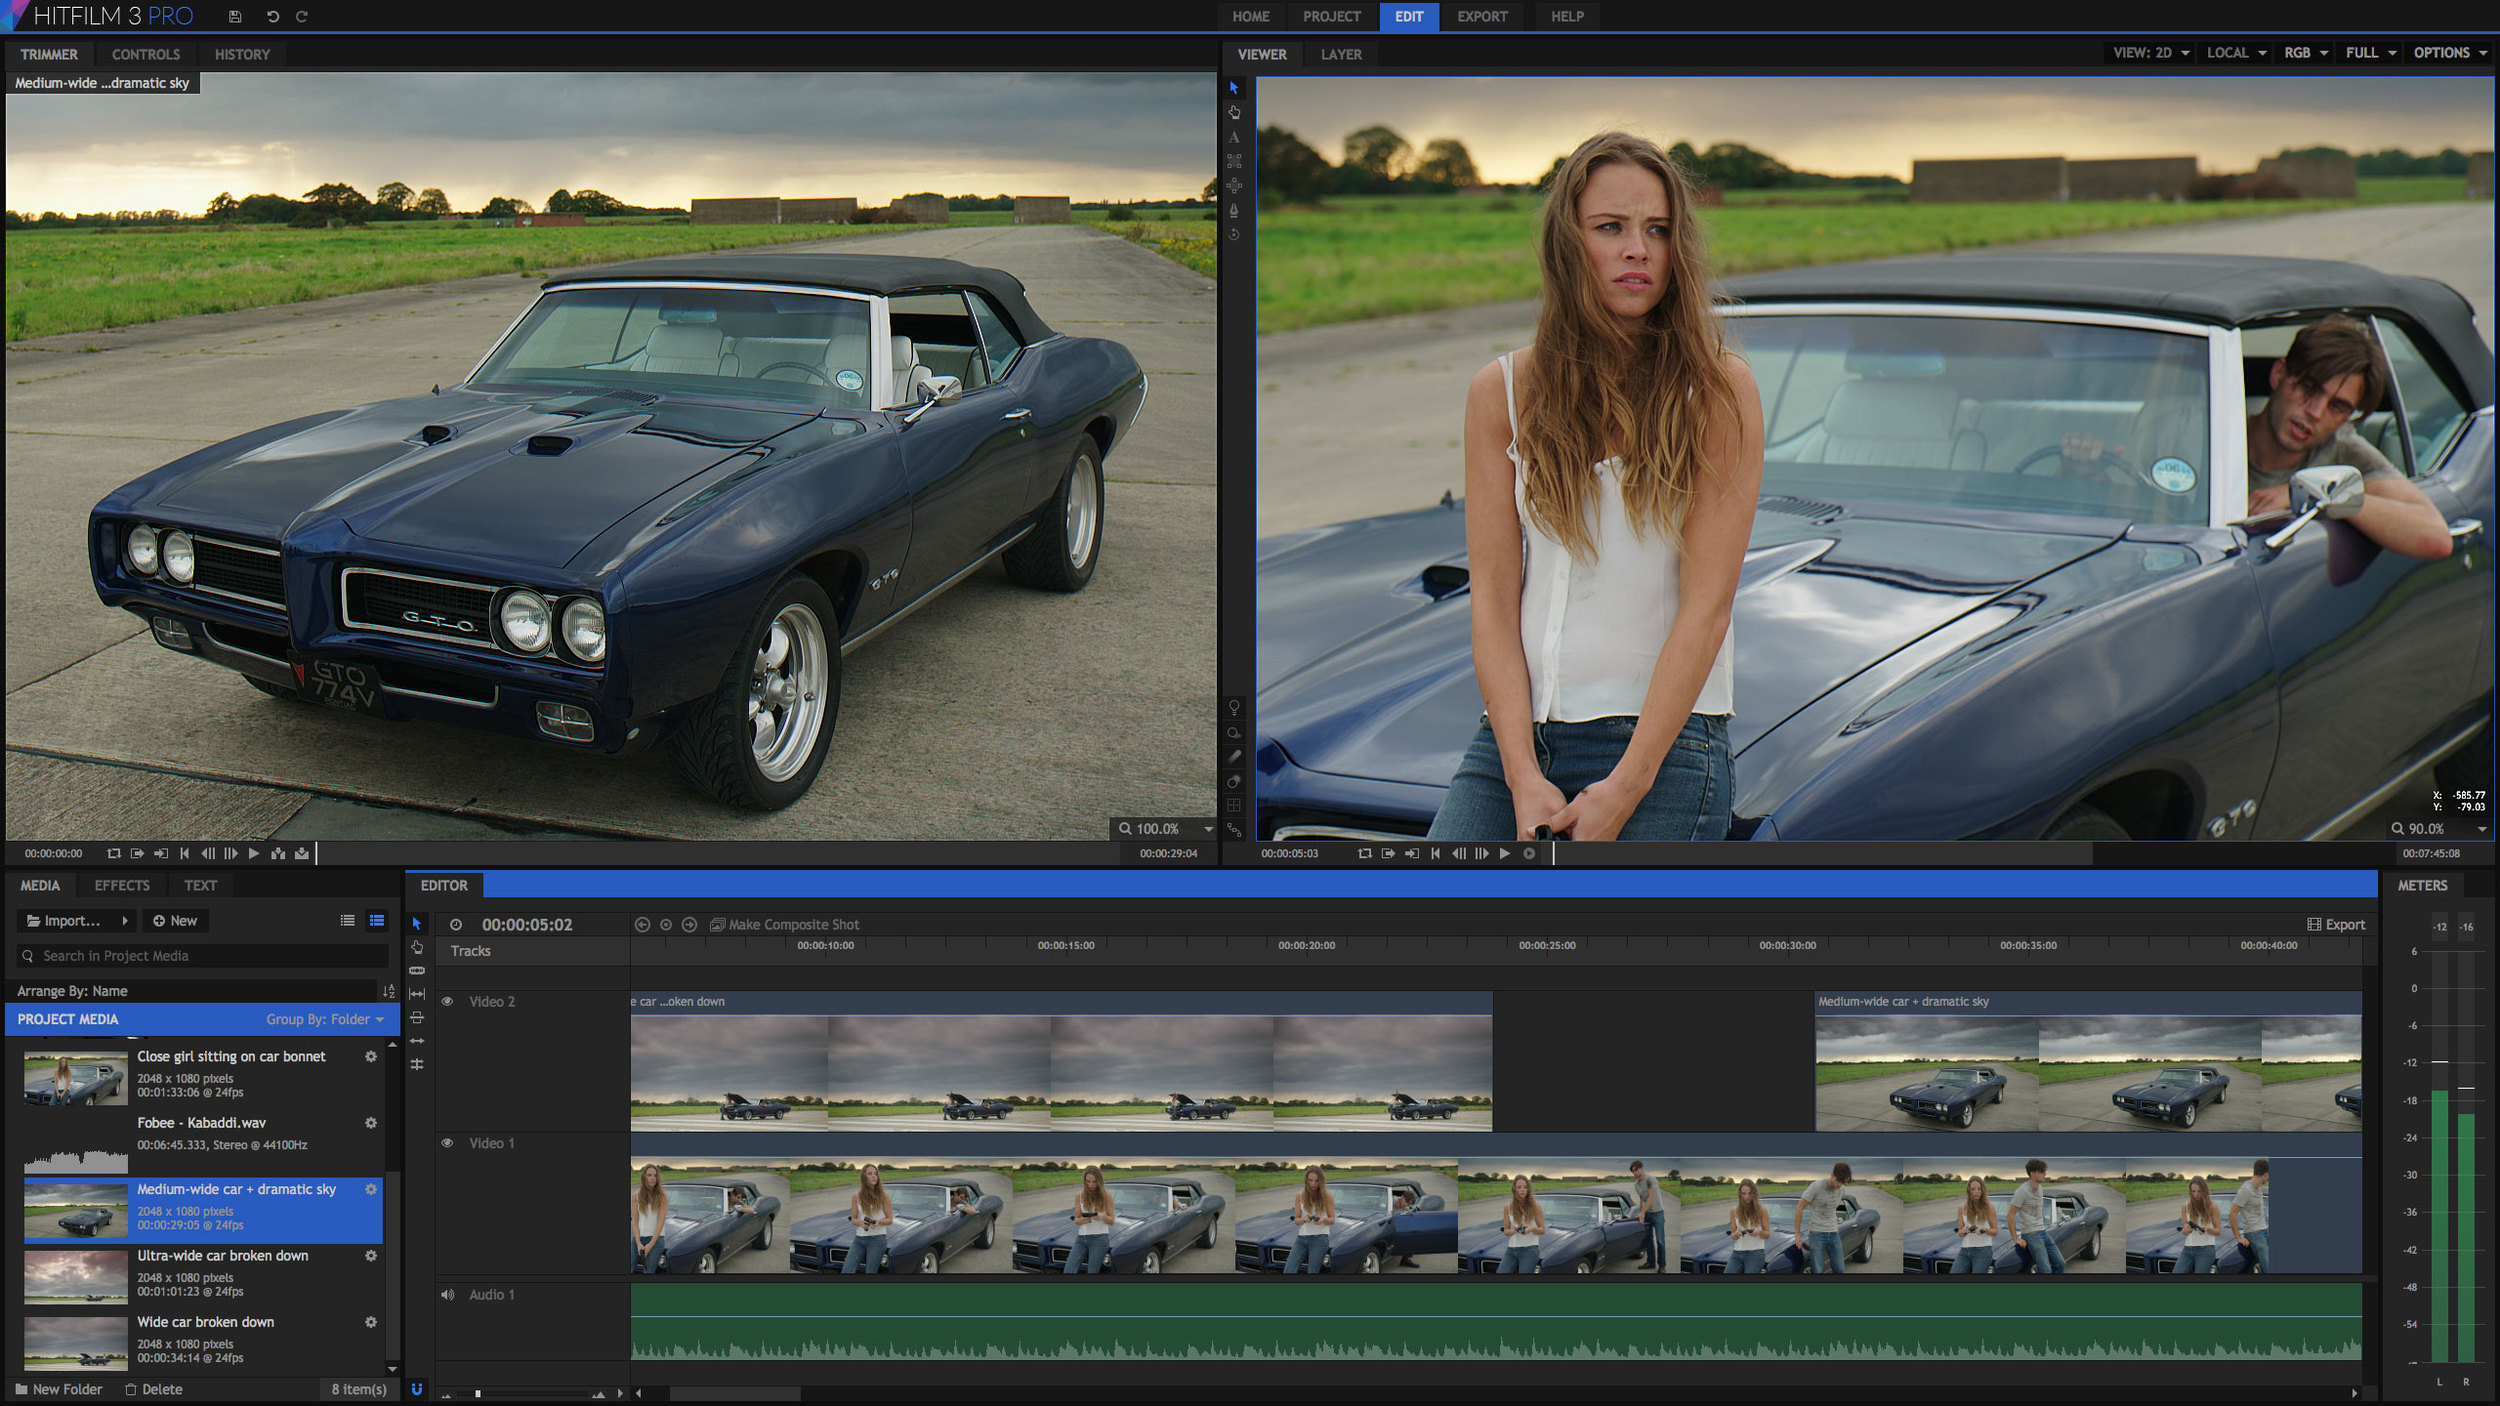 FXHOMEhas announced that the latest version of its video editing and visual effects software, HitFilm 3 Pro, is now available for pre-order fromhitfilm.comfor just $299 (£229), ahead of its release on 24th November 2014.